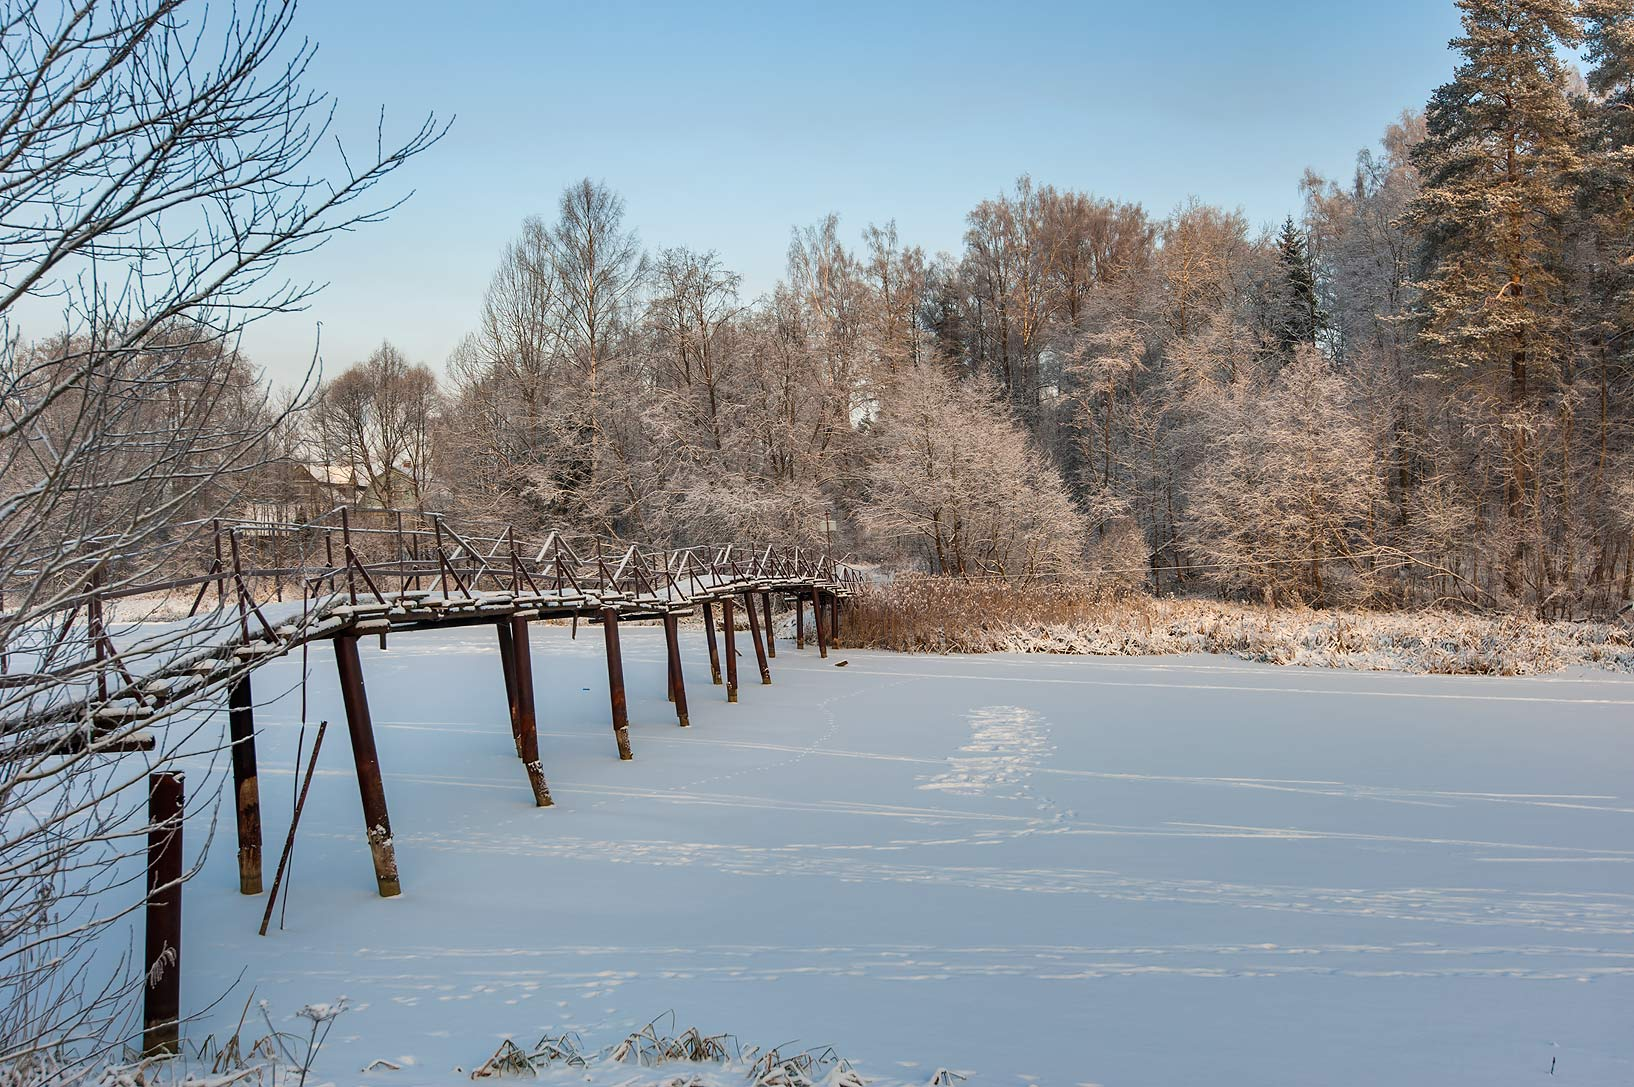 Foot bridge of Oredezh River near Rozhdestveno...District of Leningrad Region, Russia